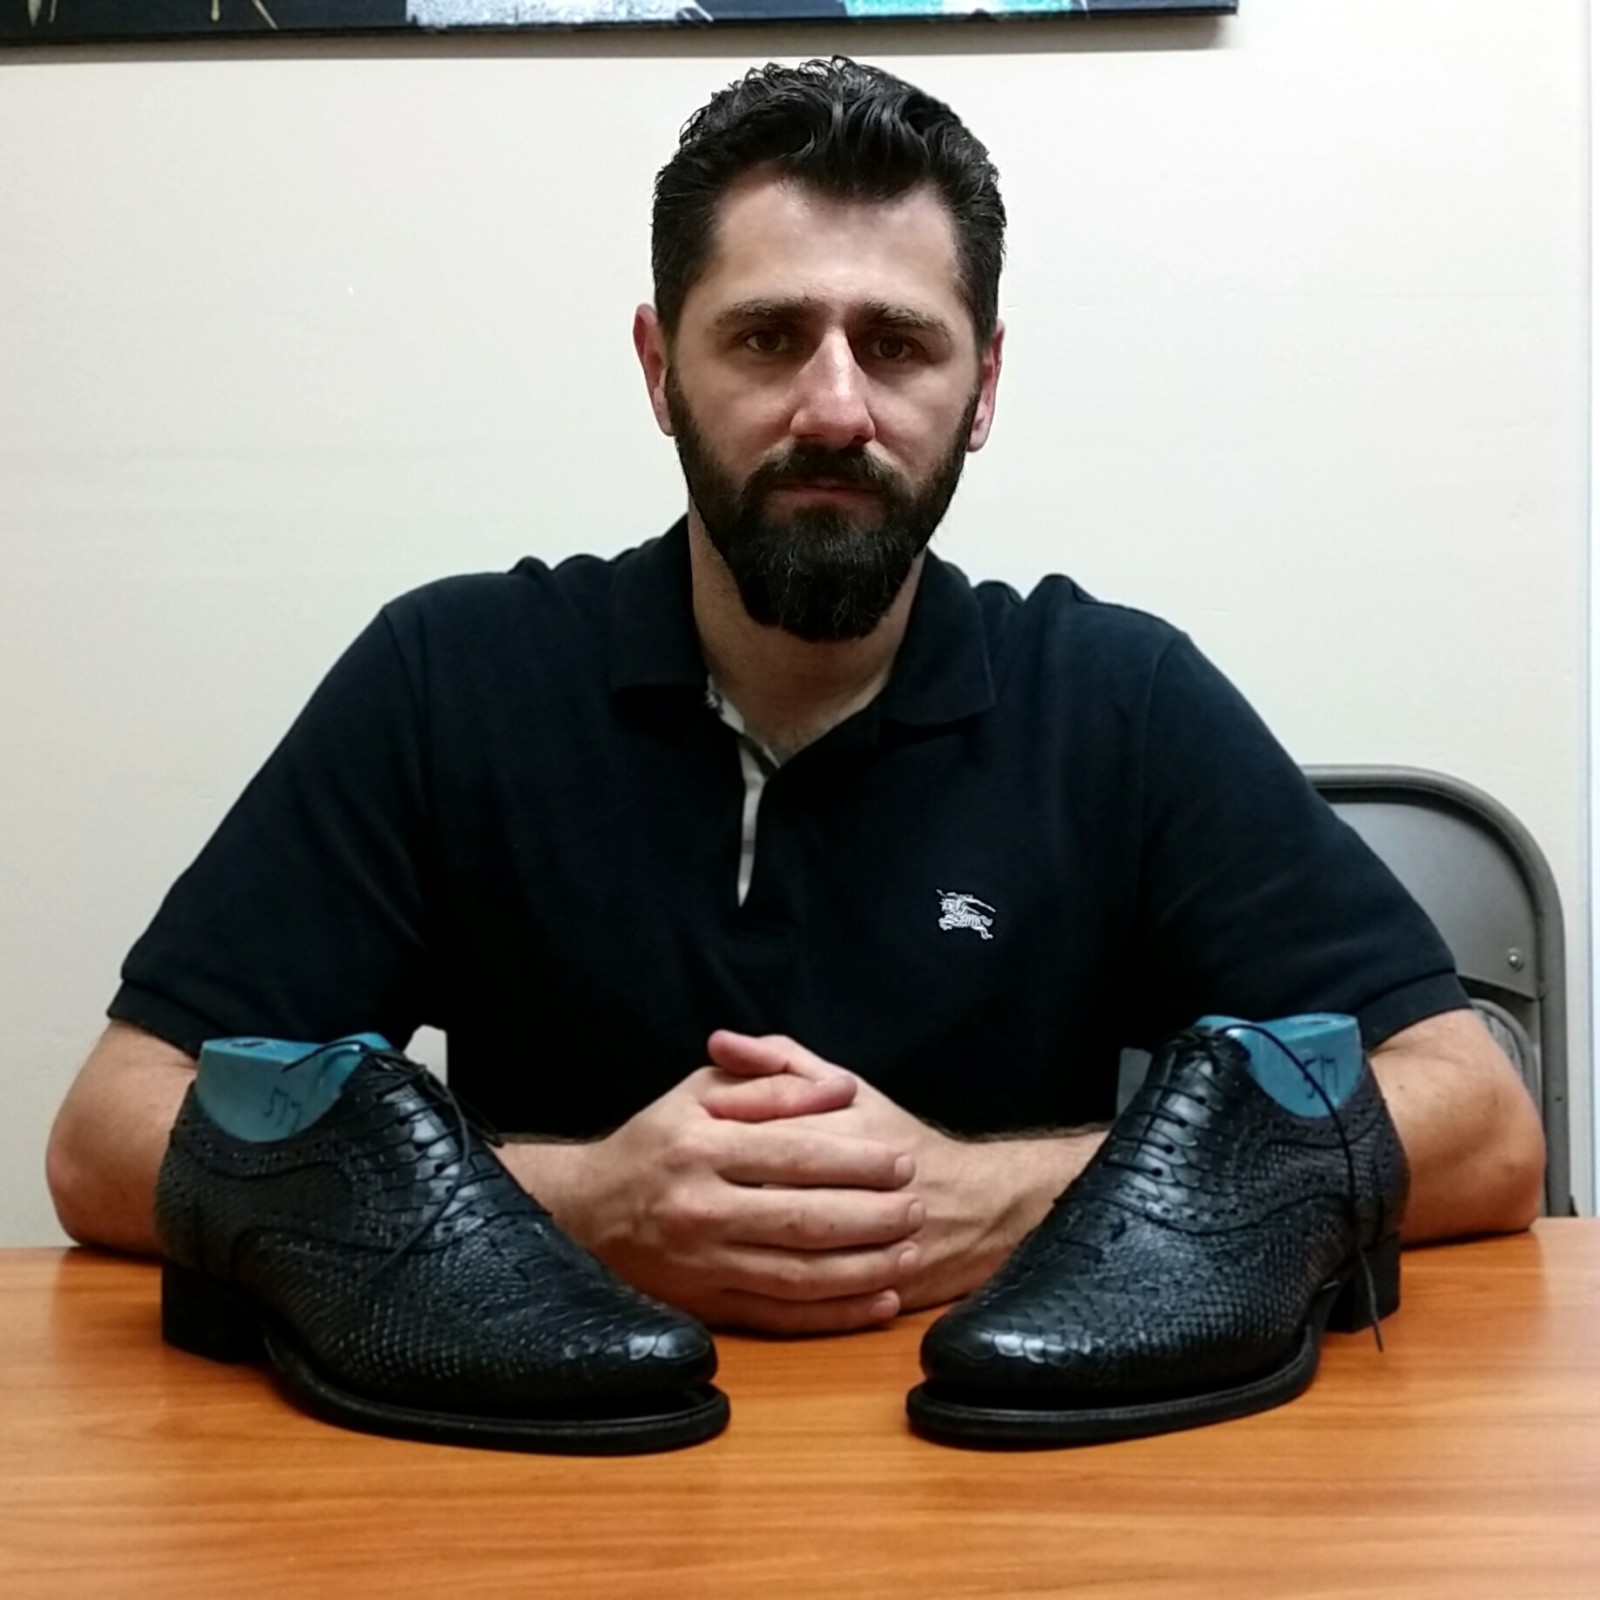 Vahan Kharazyan owner of crown dance shoes